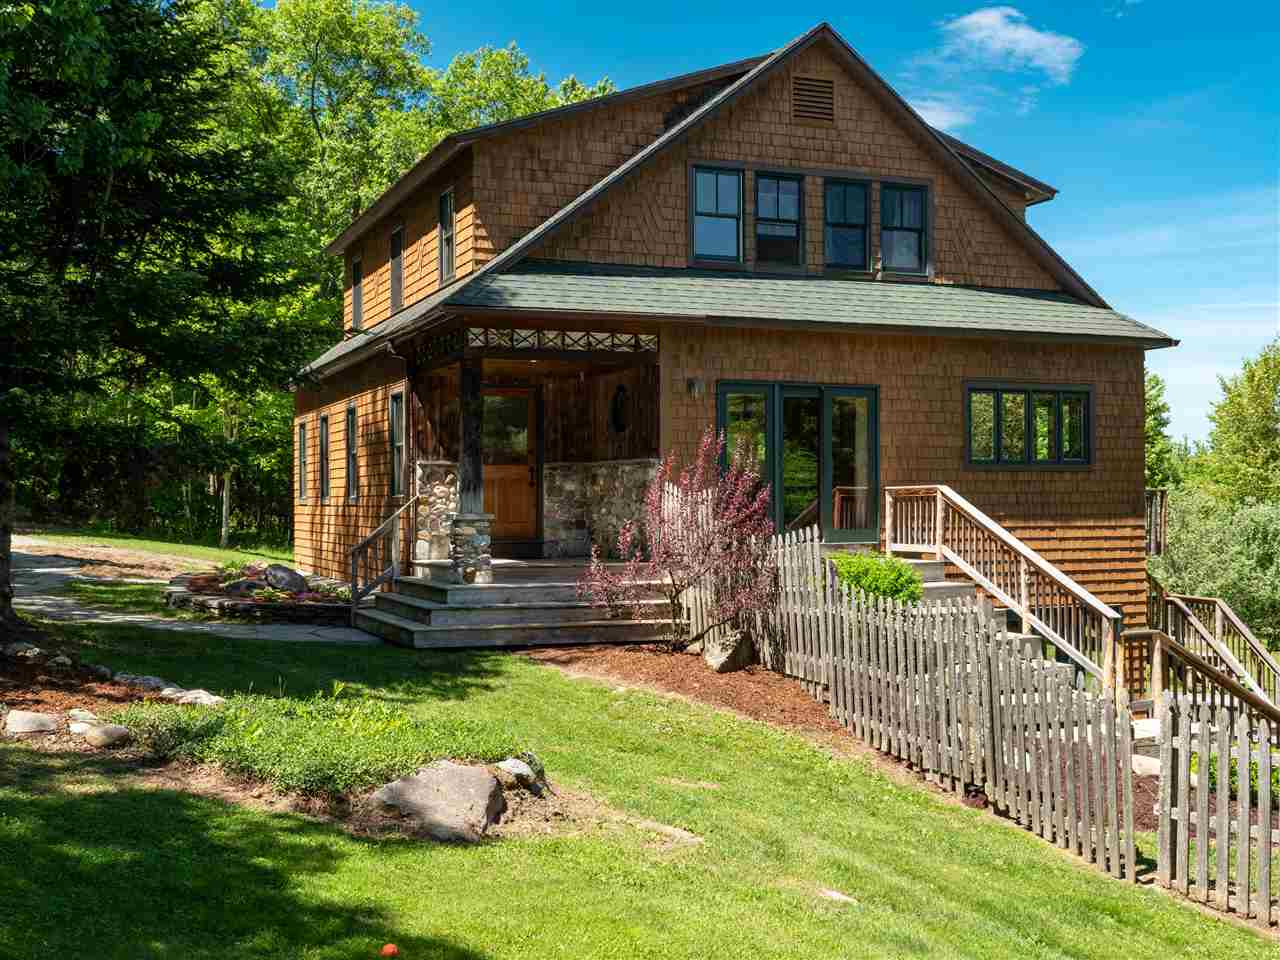 258 Farm Hill Road, Morristown